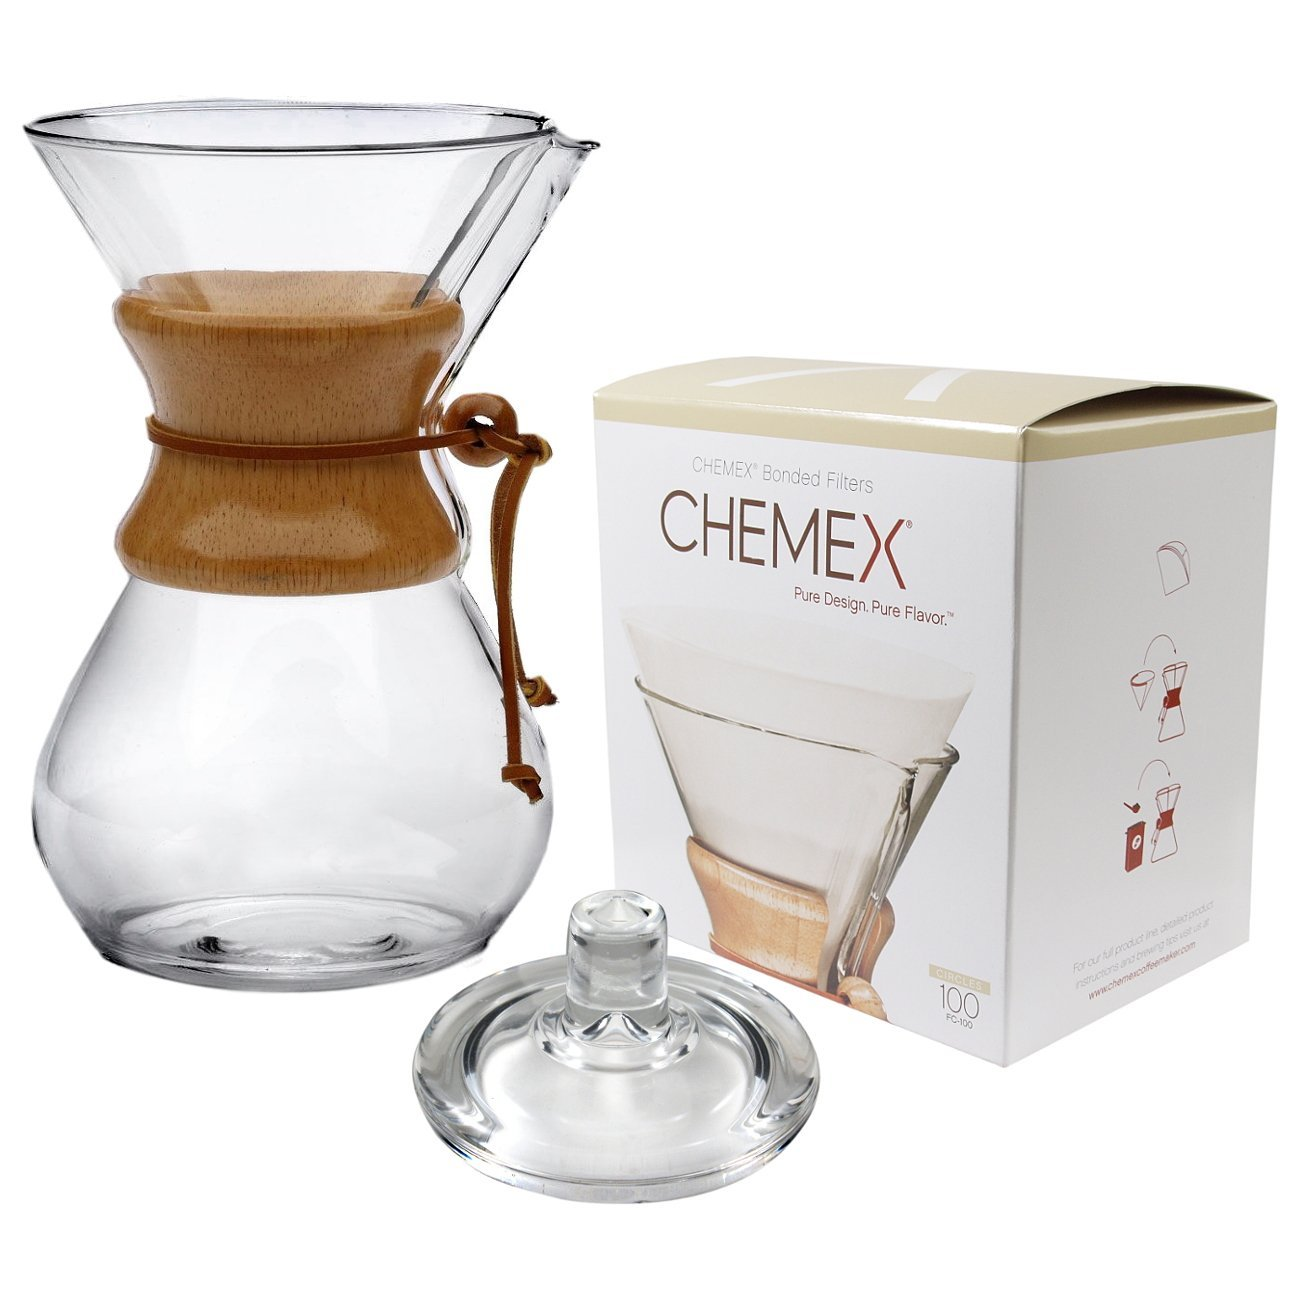 Chemex Classic Wood Collar and Tie Glass 50 Ounce Coffee Maker with Cover and 100 Count Bonded Circle Coffee Filters